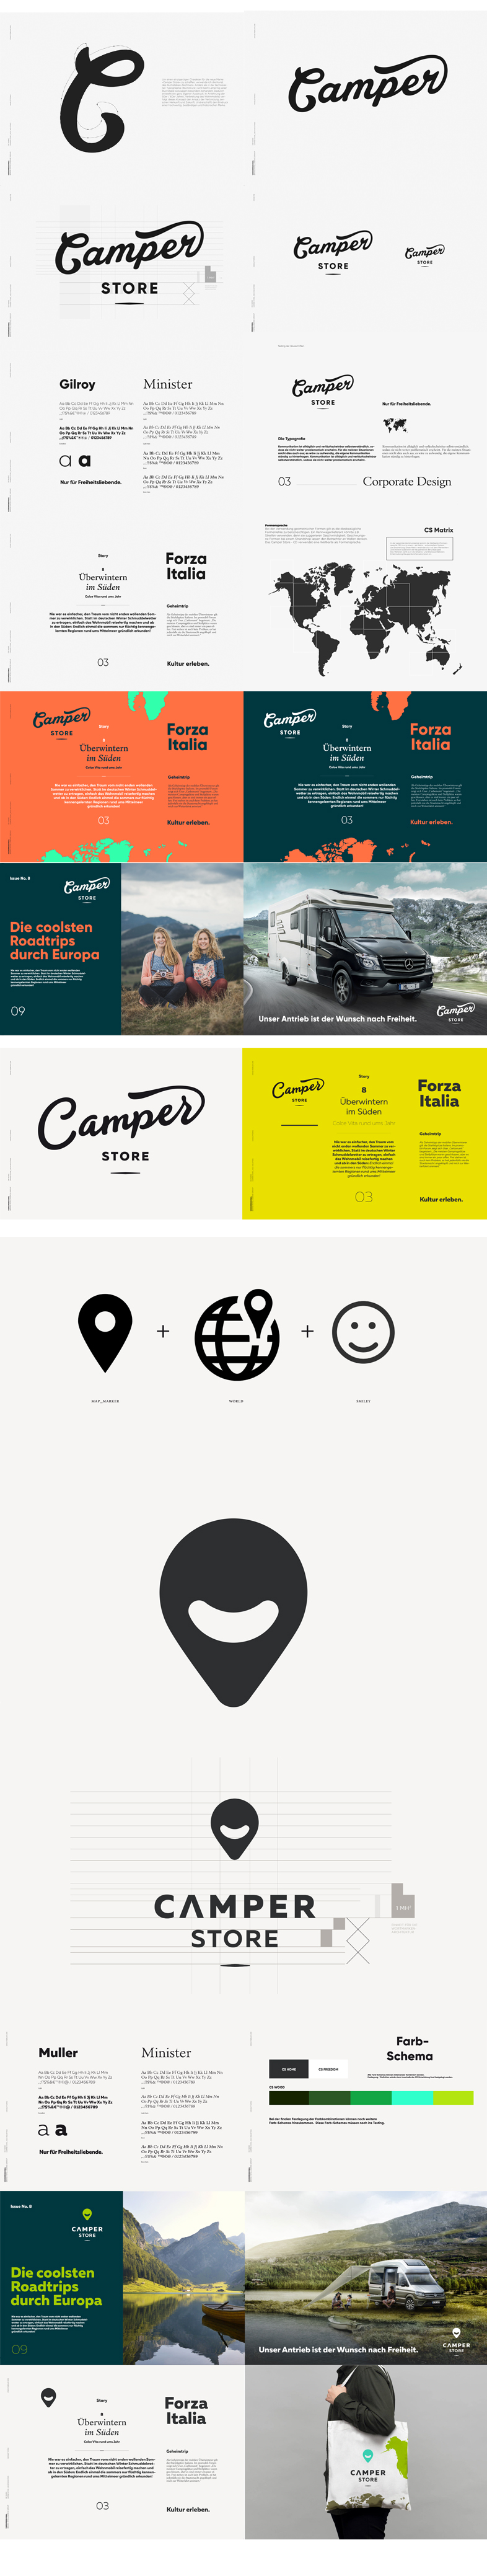 Camper Store – Corporate Design